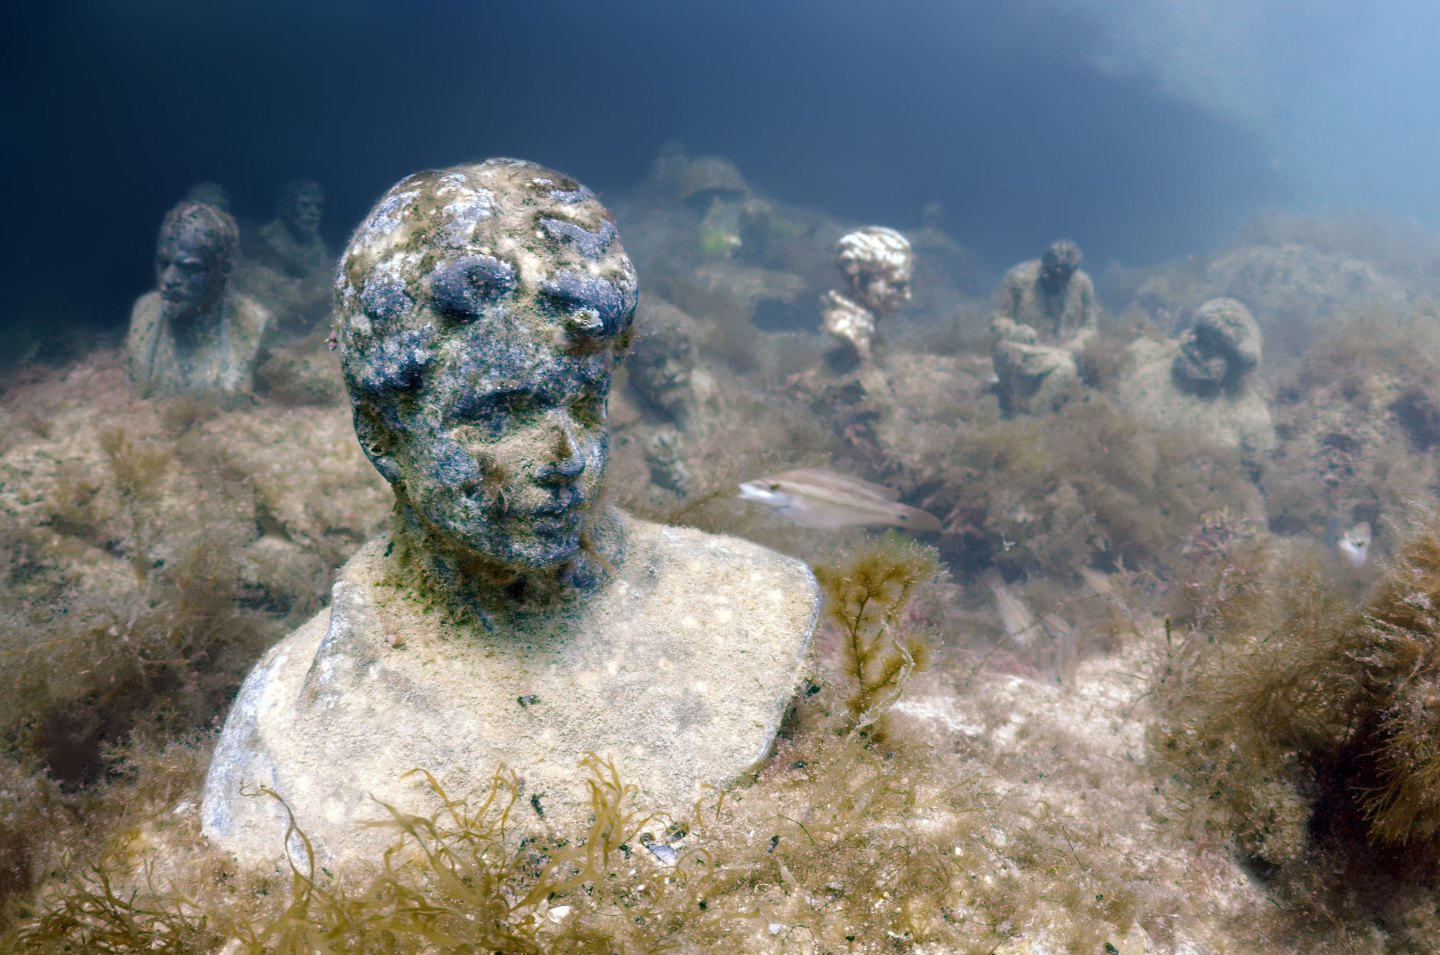 Underwater Leaders. What Is Lenin, Stalin and Dzerzhinsky Doing at the Bottom of the Black Sea?